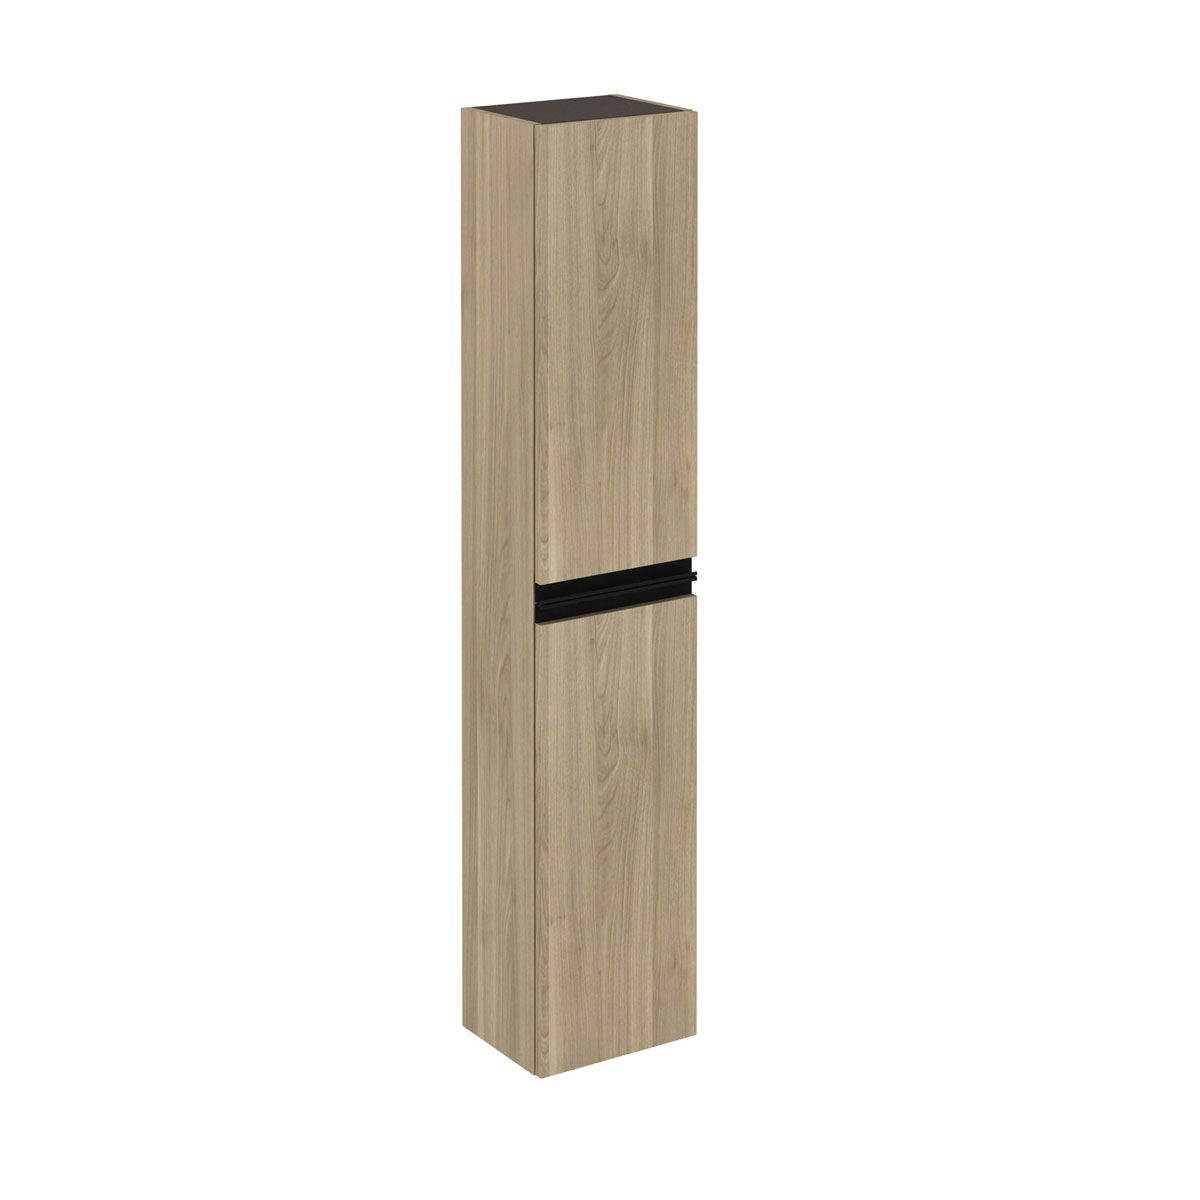 Frontline Structure Oak Wall Mounted Tall Unit 300mm